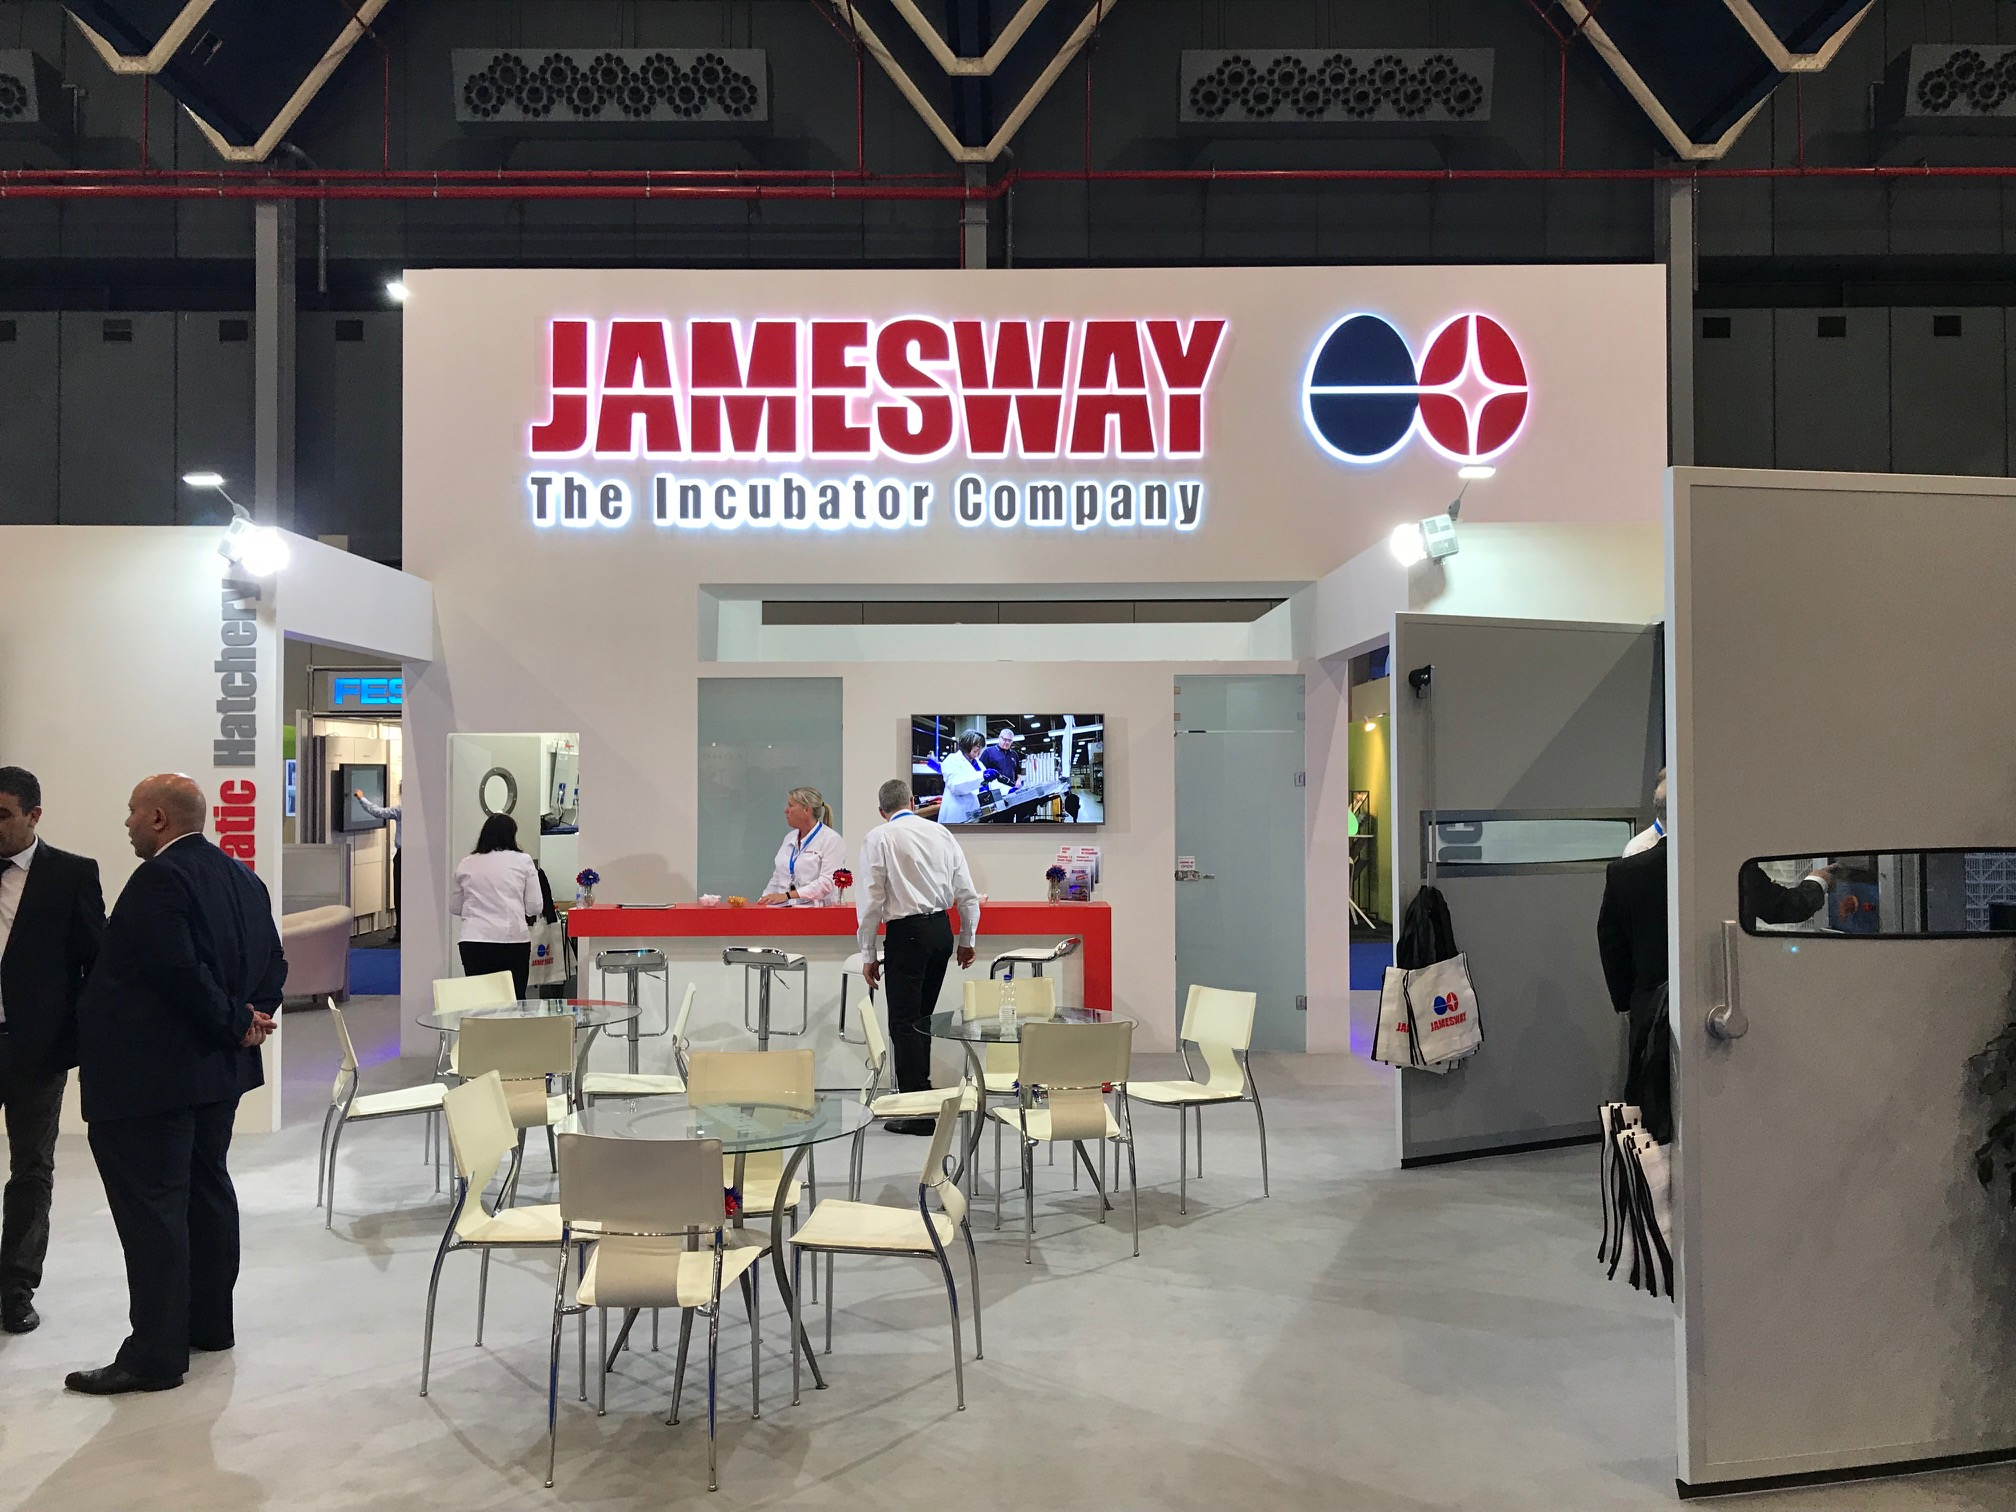 Exhibition stand design and build for Jamesway at VIV Europe 2018 Jaarbeurs Utrect